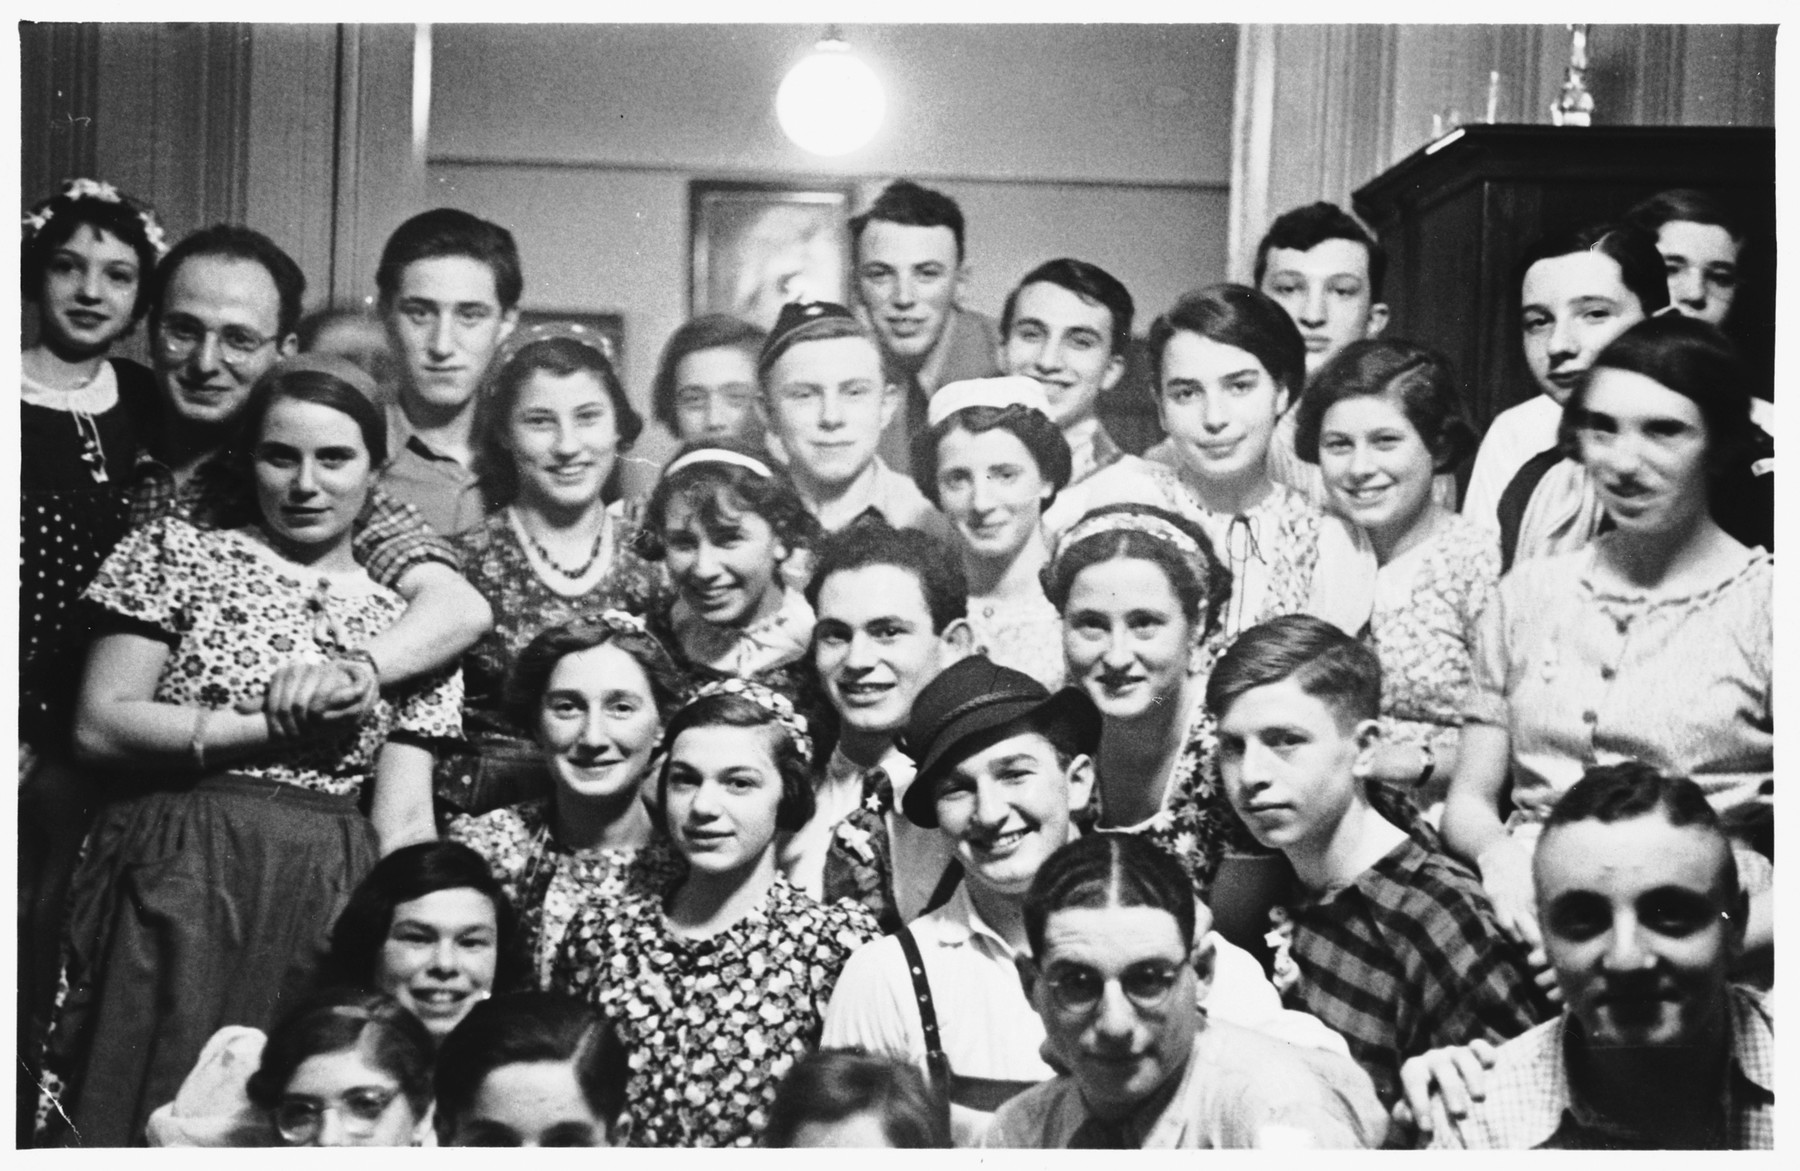 Jewish teenagers attend a Purim party in Frankfurt.  Walter Wolff is pictured in the front row, second from the right.